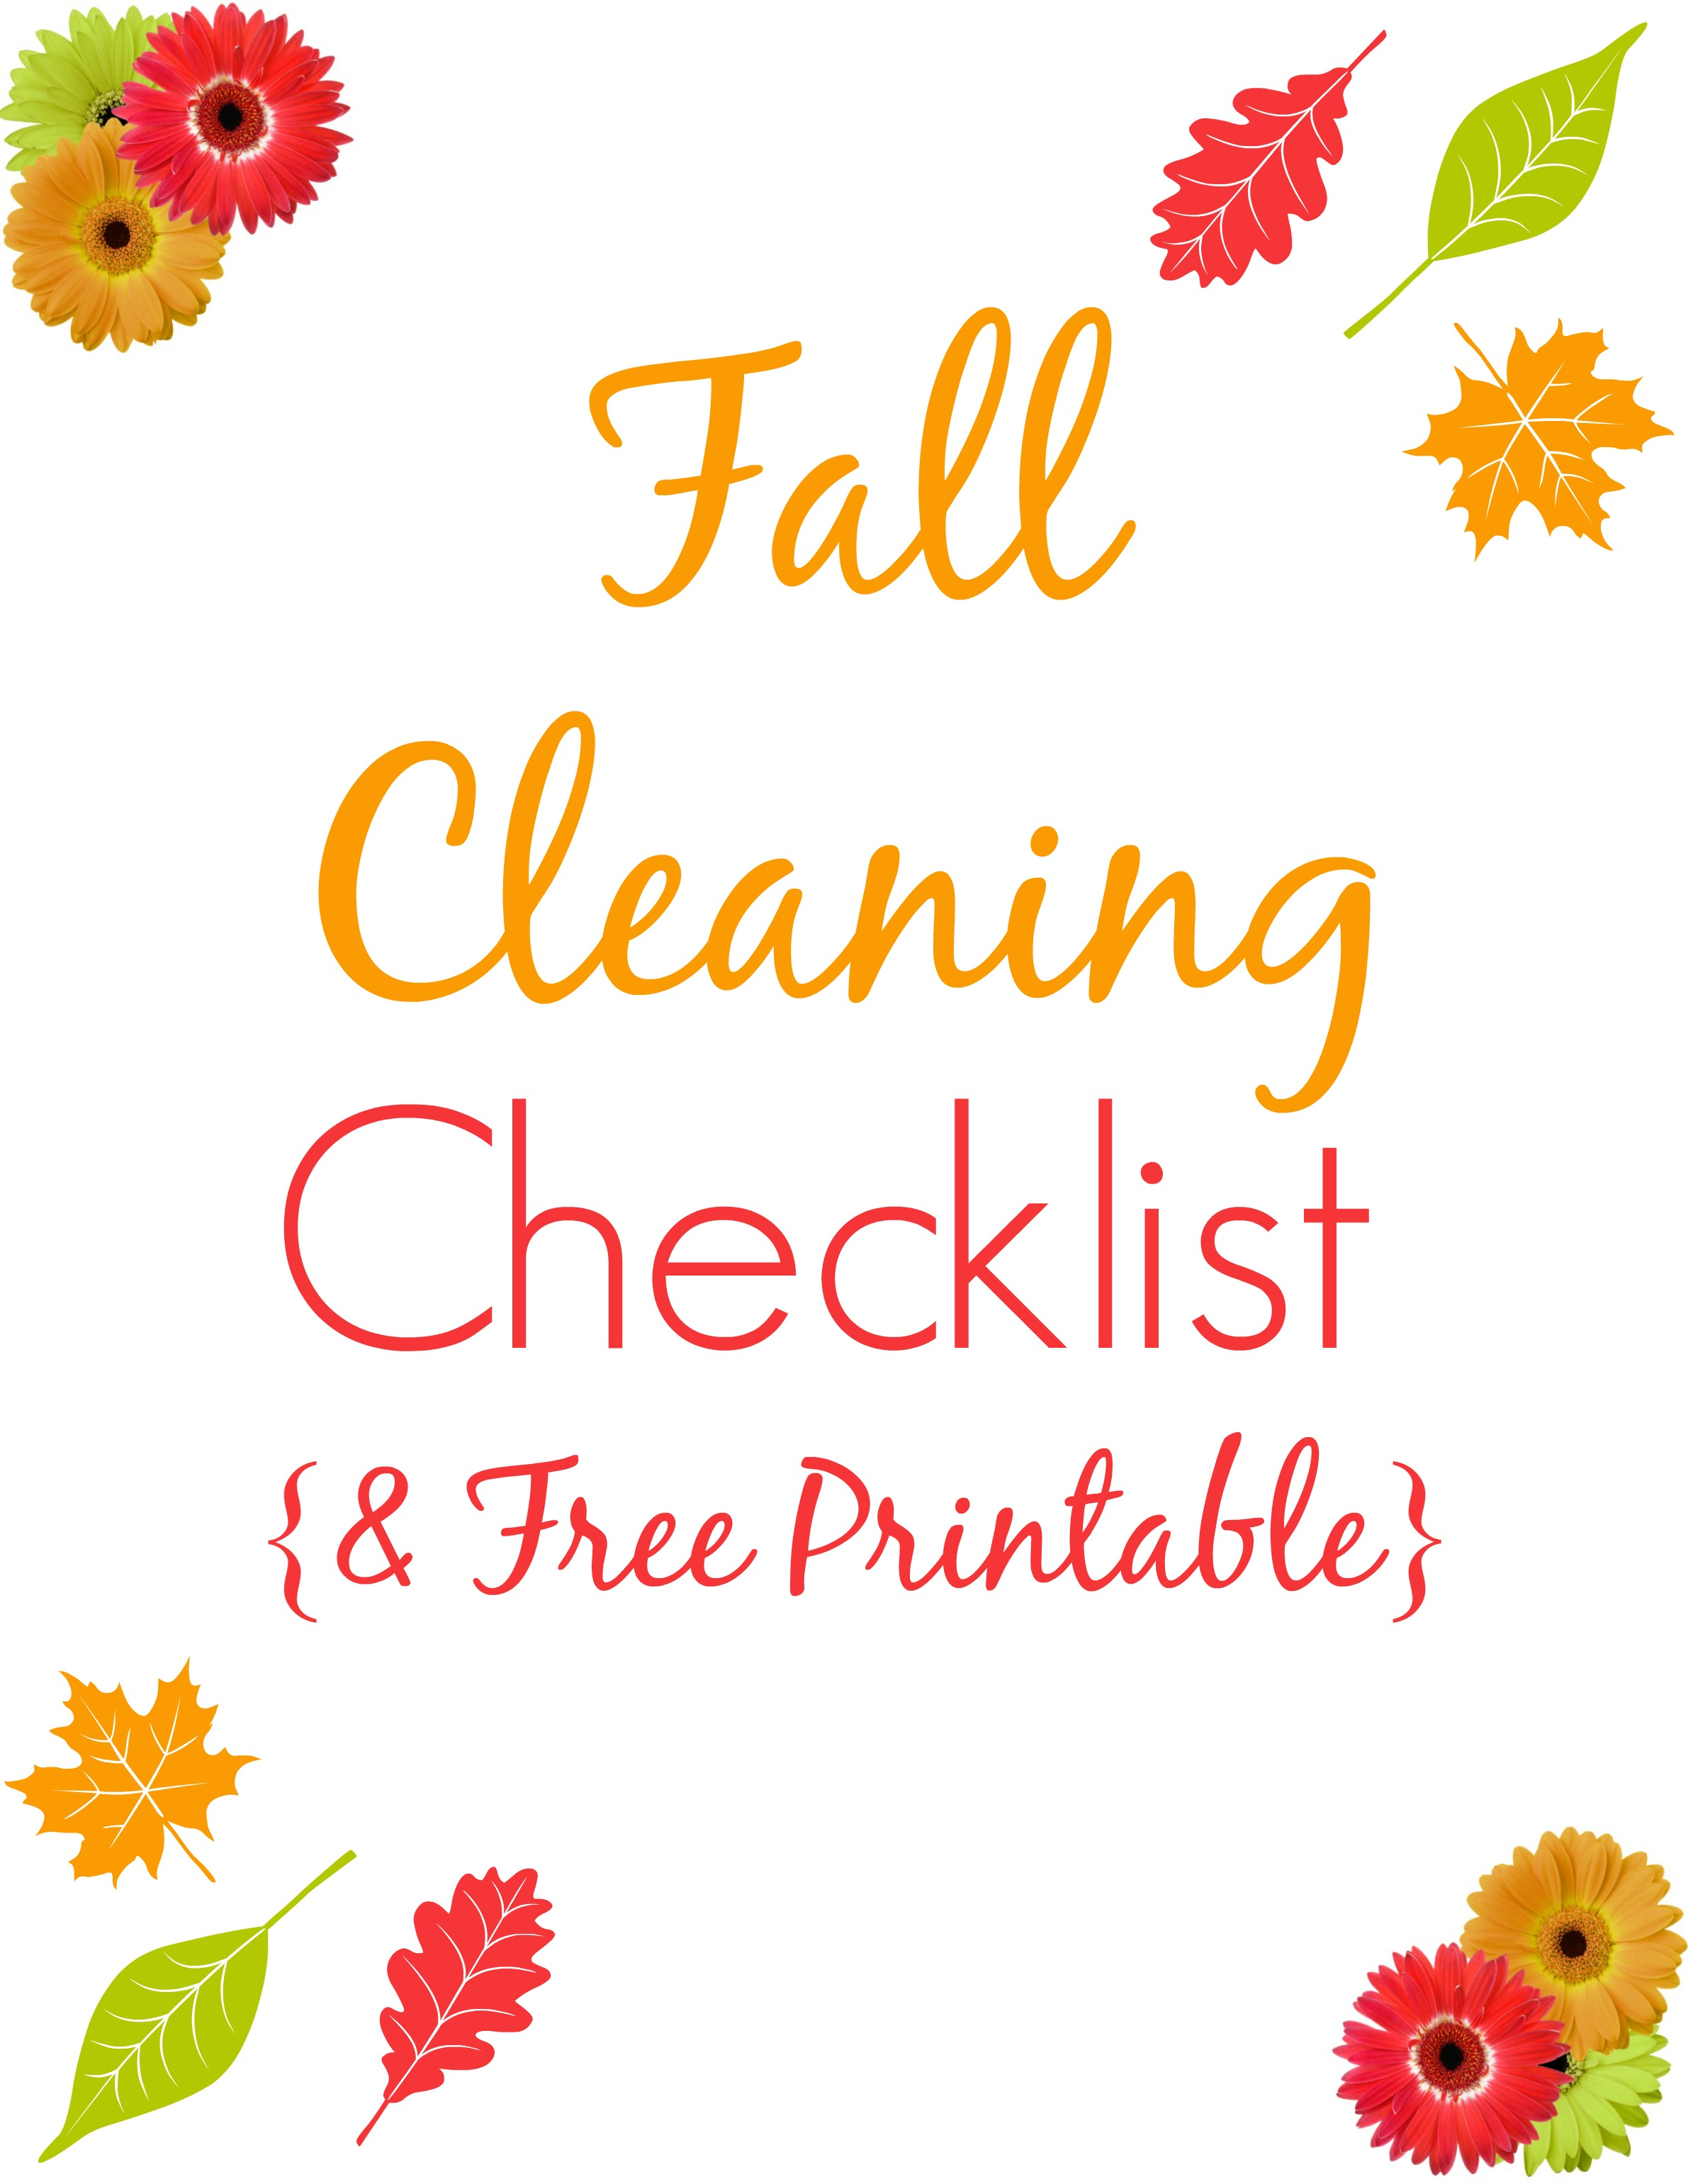 Fall Cleaning Checklist + Printable